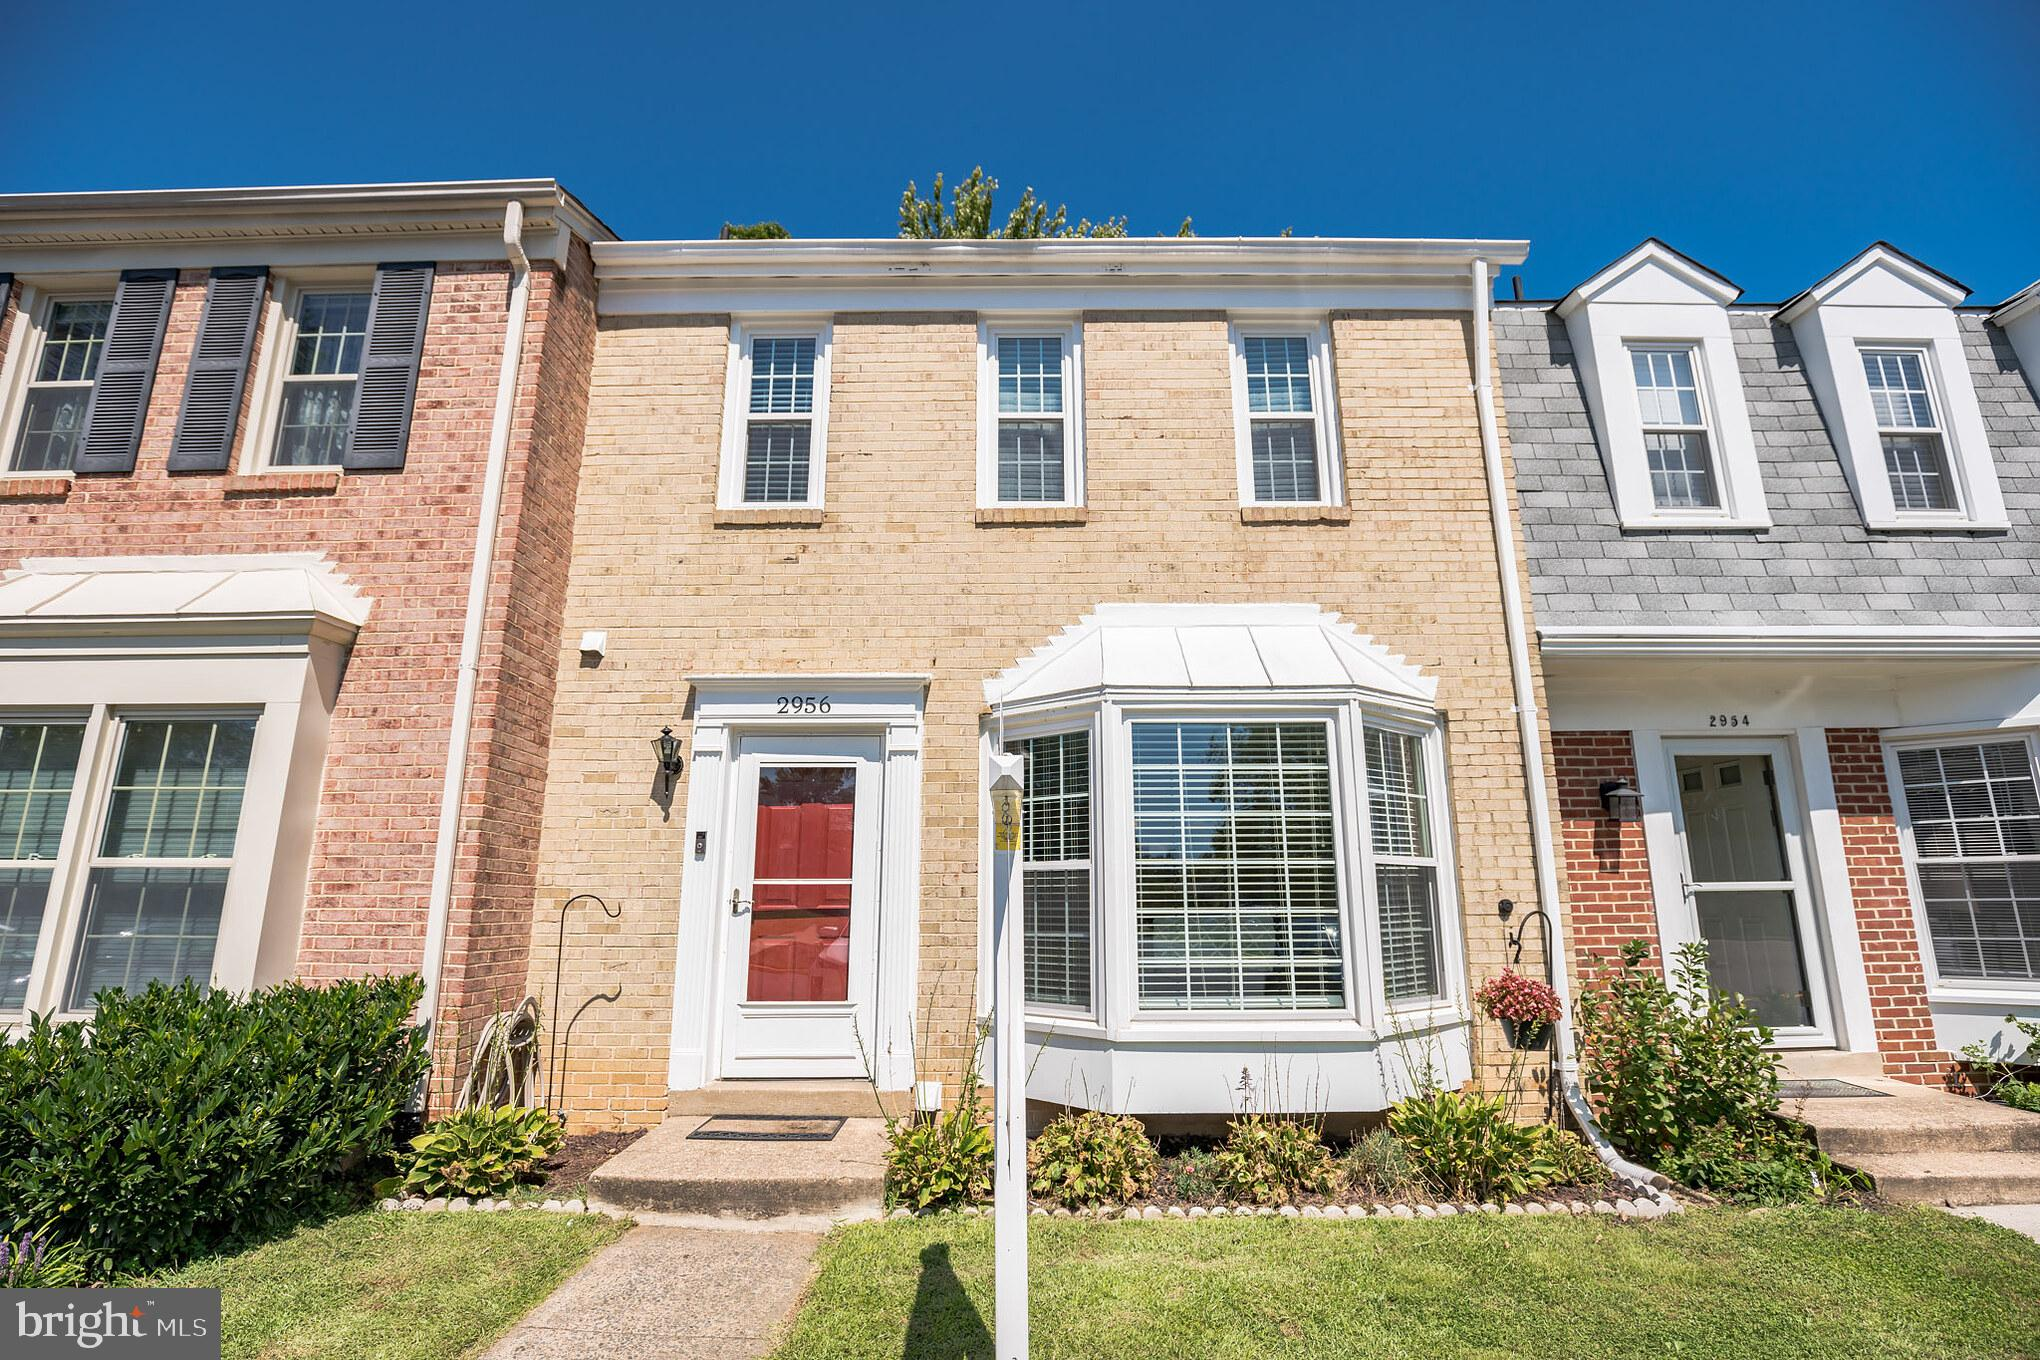 Welcome home to this beautiful brick front Colonial townhome in the sought after Waterford community